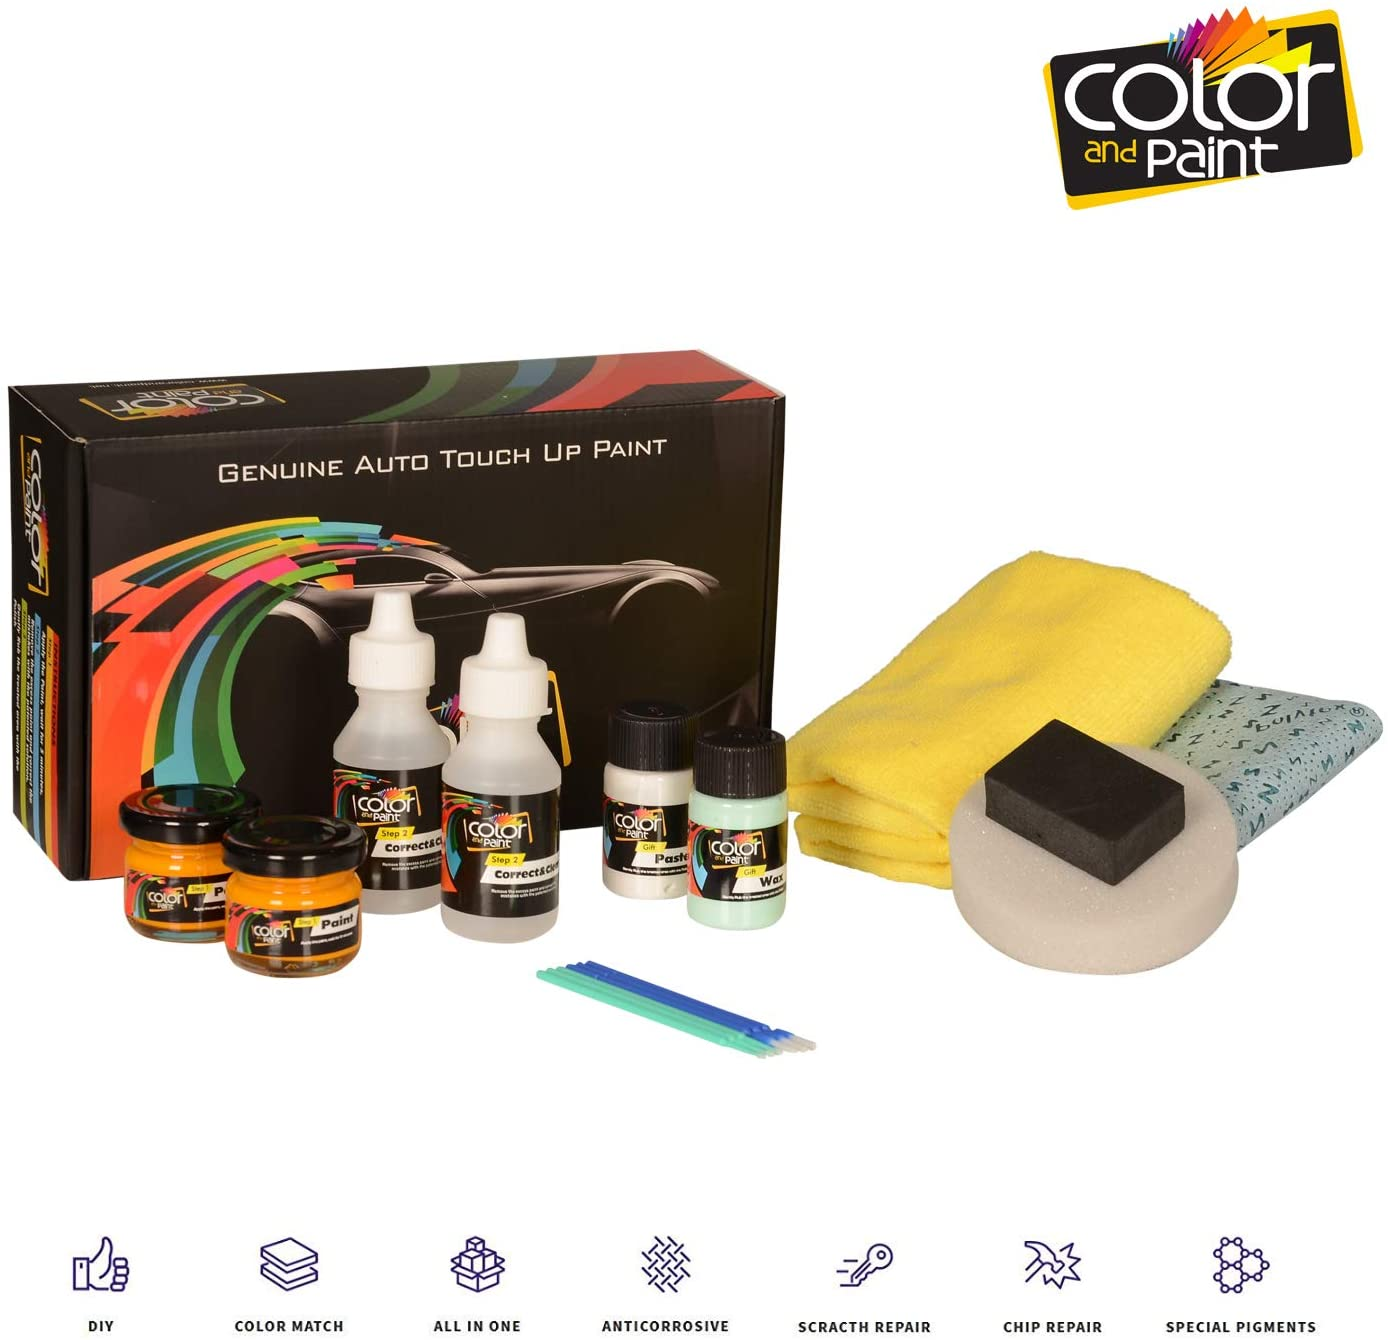 Audi TT Coupe/Mythos Black MET - LY9T / Color and Paint Touch UP Paint System for Paint Chips and Scratches/PRO Care